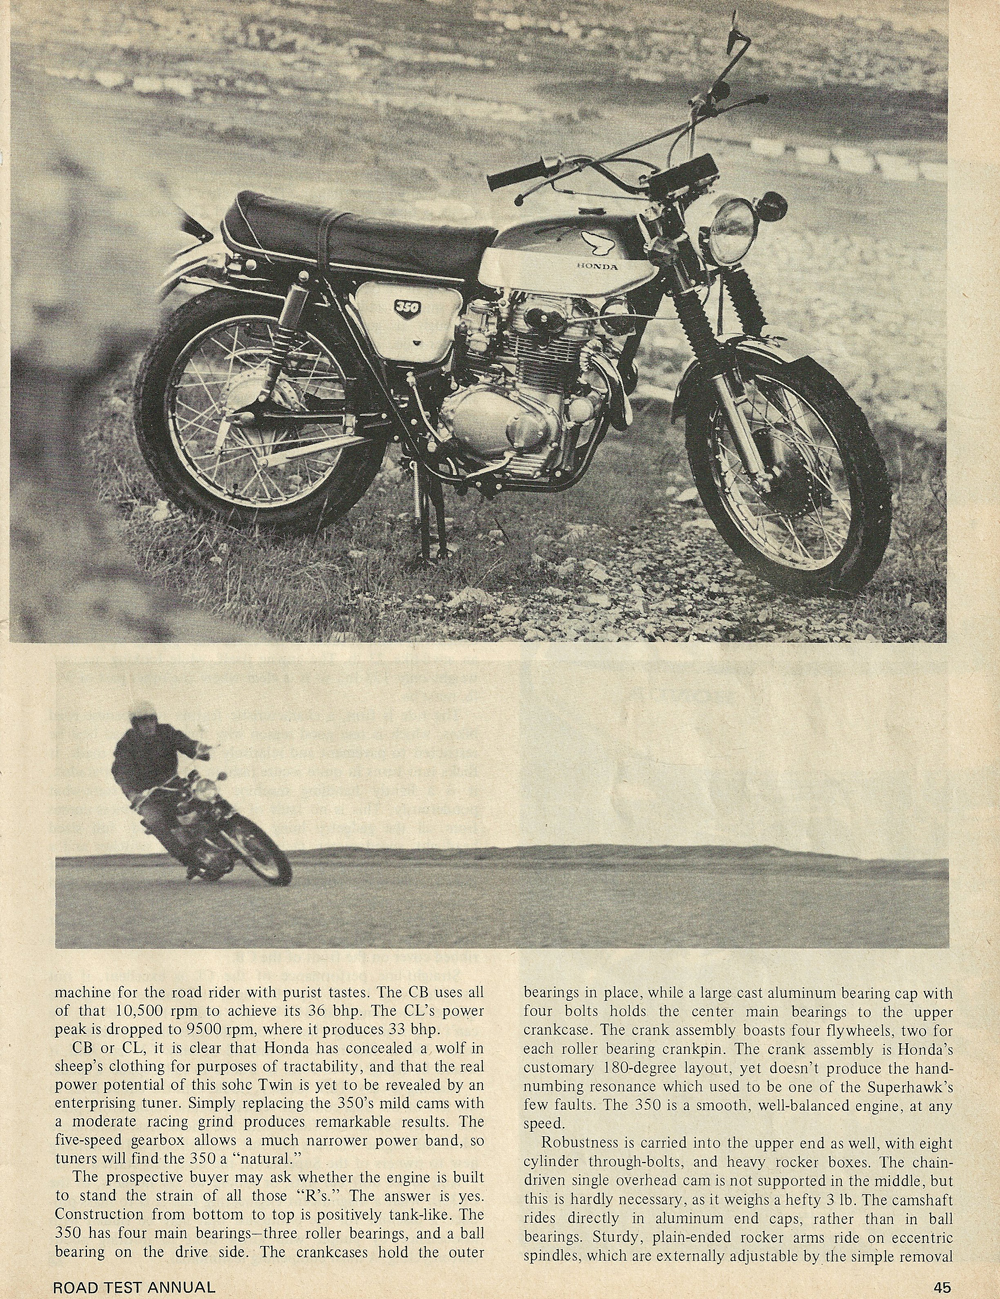 1969 Honda CL350 Scrambler road test 3.jpg